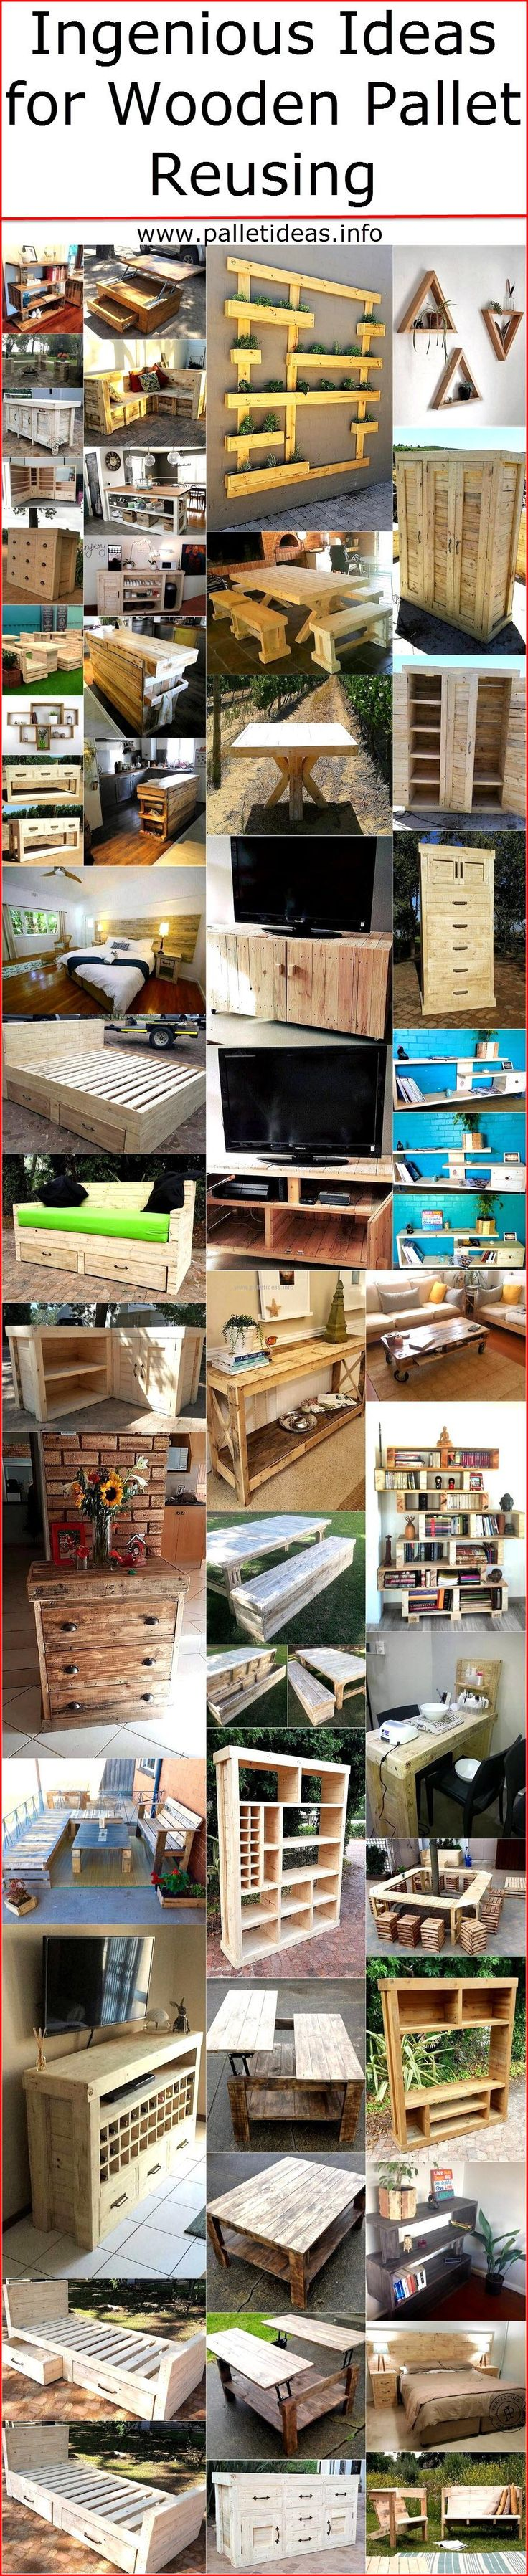 There are a few things that can be reshaped and reused for different purposes and they can be turned into the things that can save a lot of money, one of them are wooden pallets with which one can create furniture that is costly; but the use of wood pallets at home can save a huge amount of hard earned money. Ranging from the furniture for the bedroom to the decorative items for the garden, starting from the inside of the home to the products required to adorn the home from outside…